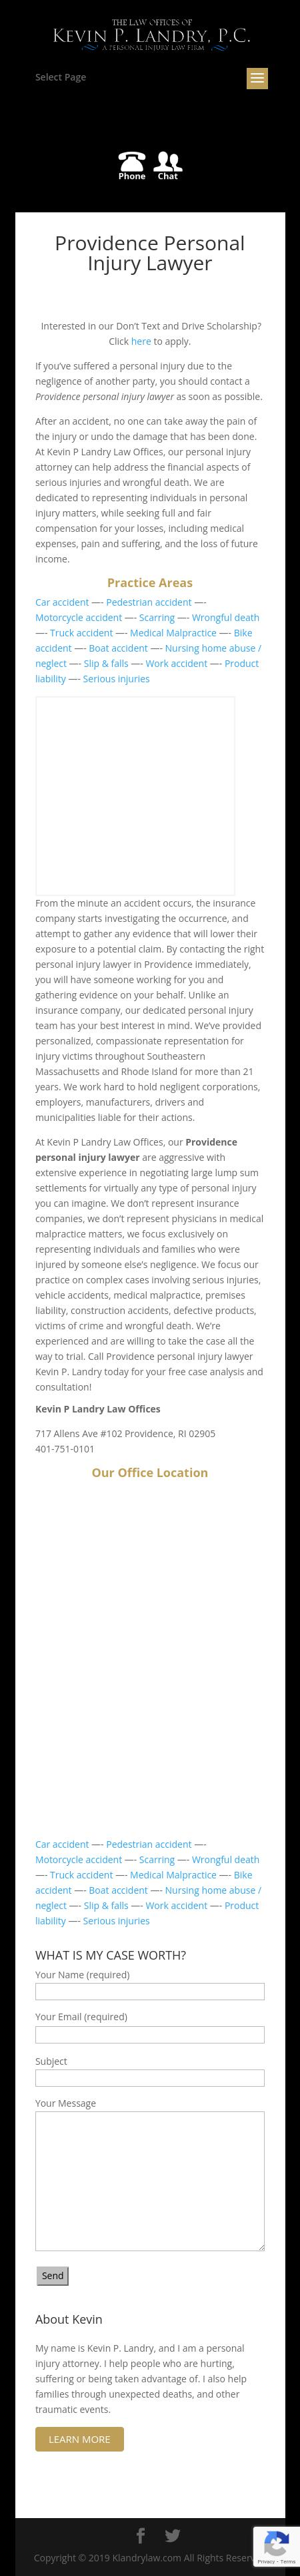 Kevin P Landry Law Offices - Providence RI Lawyers